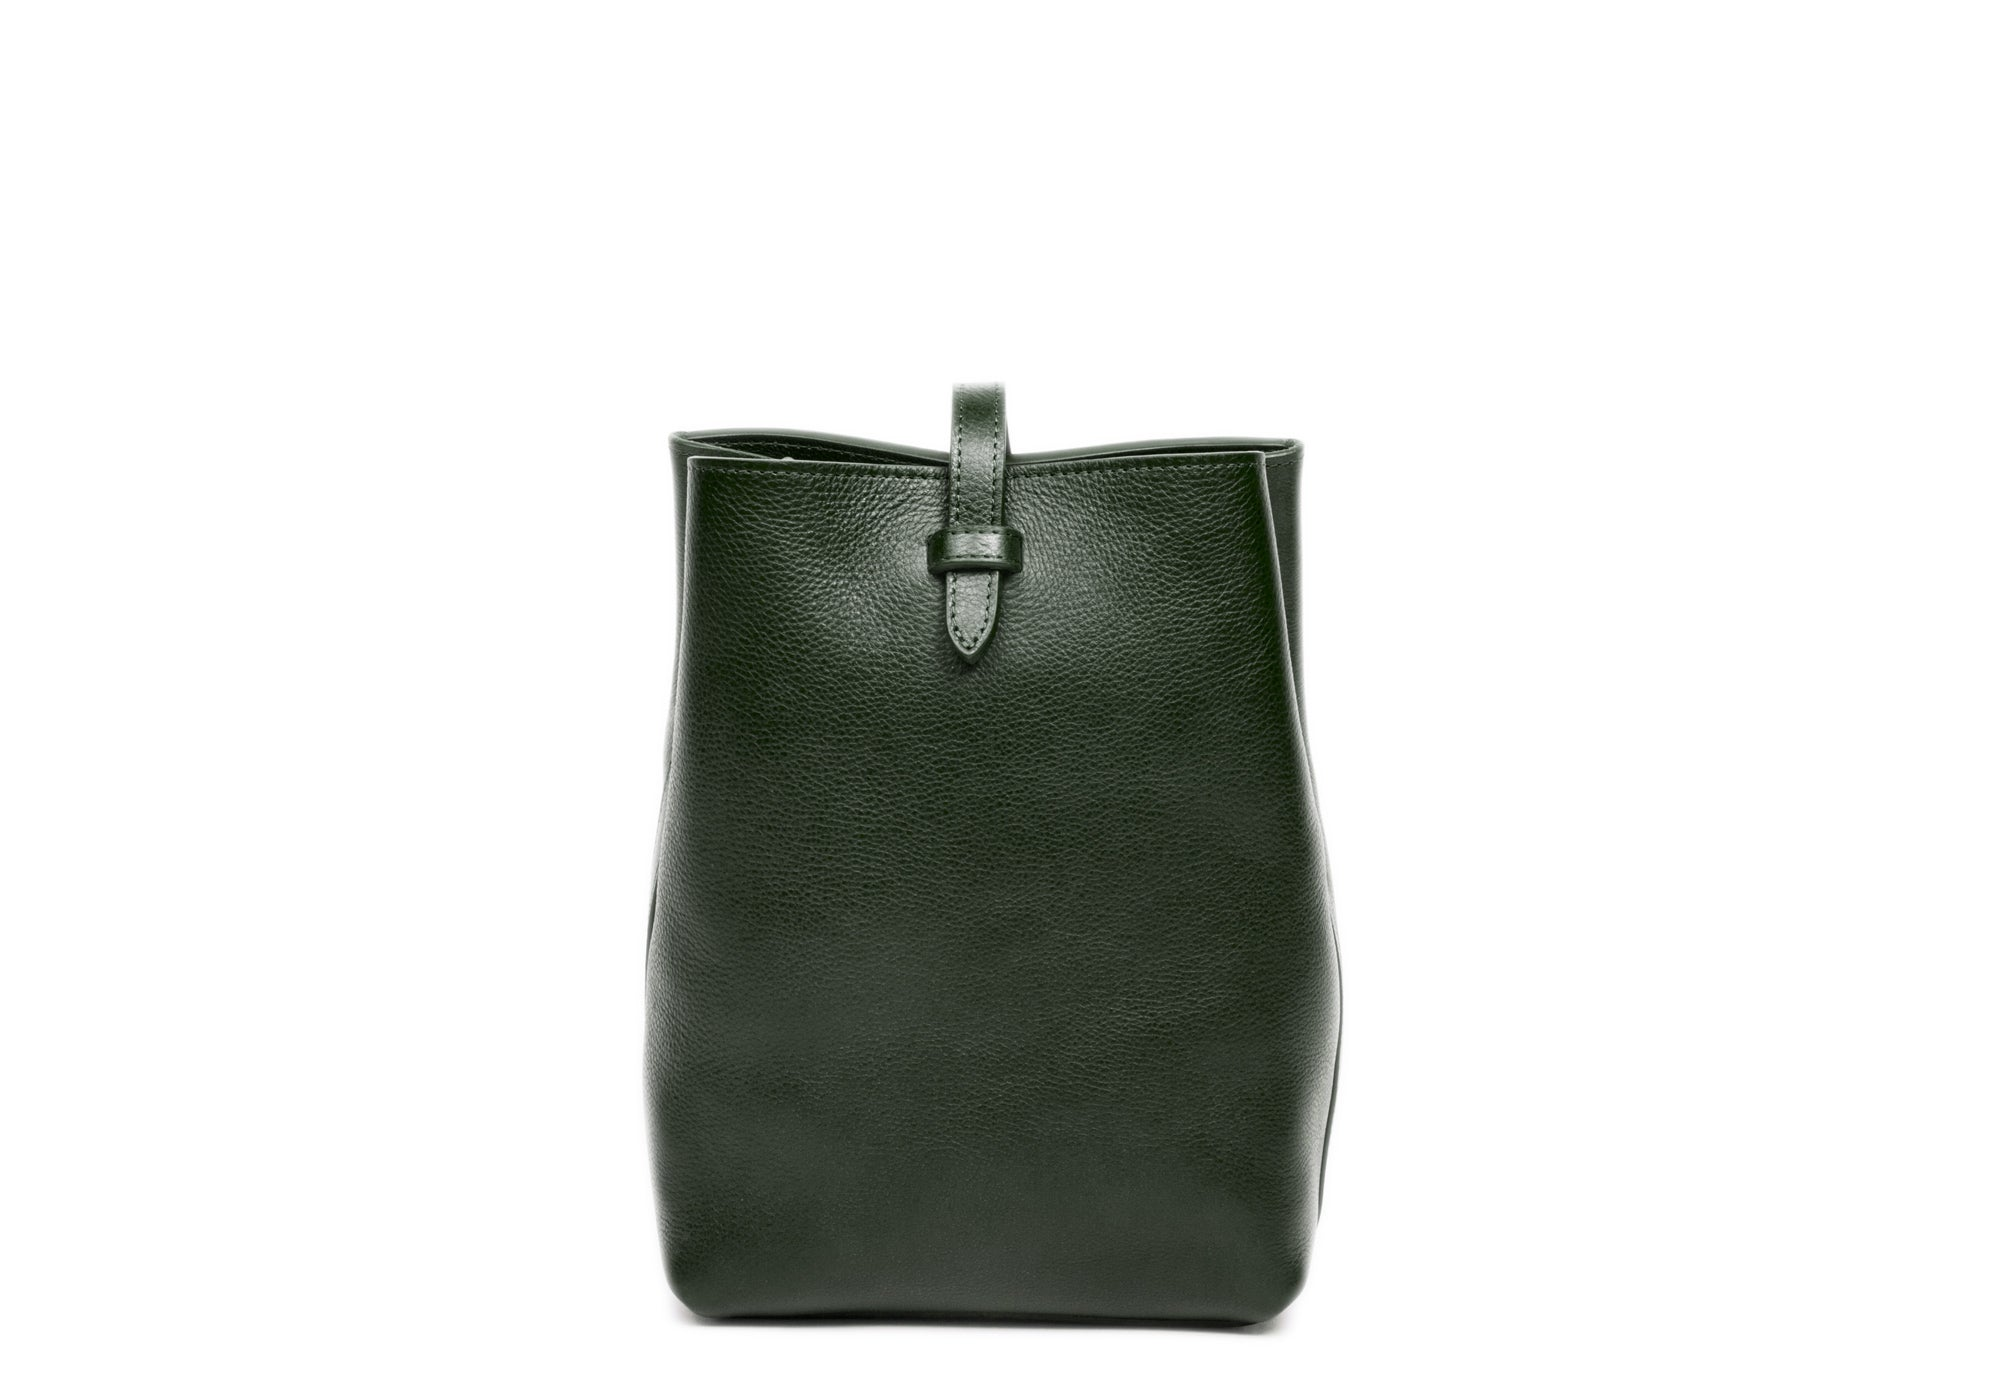 The Mini Sling Backpack Green